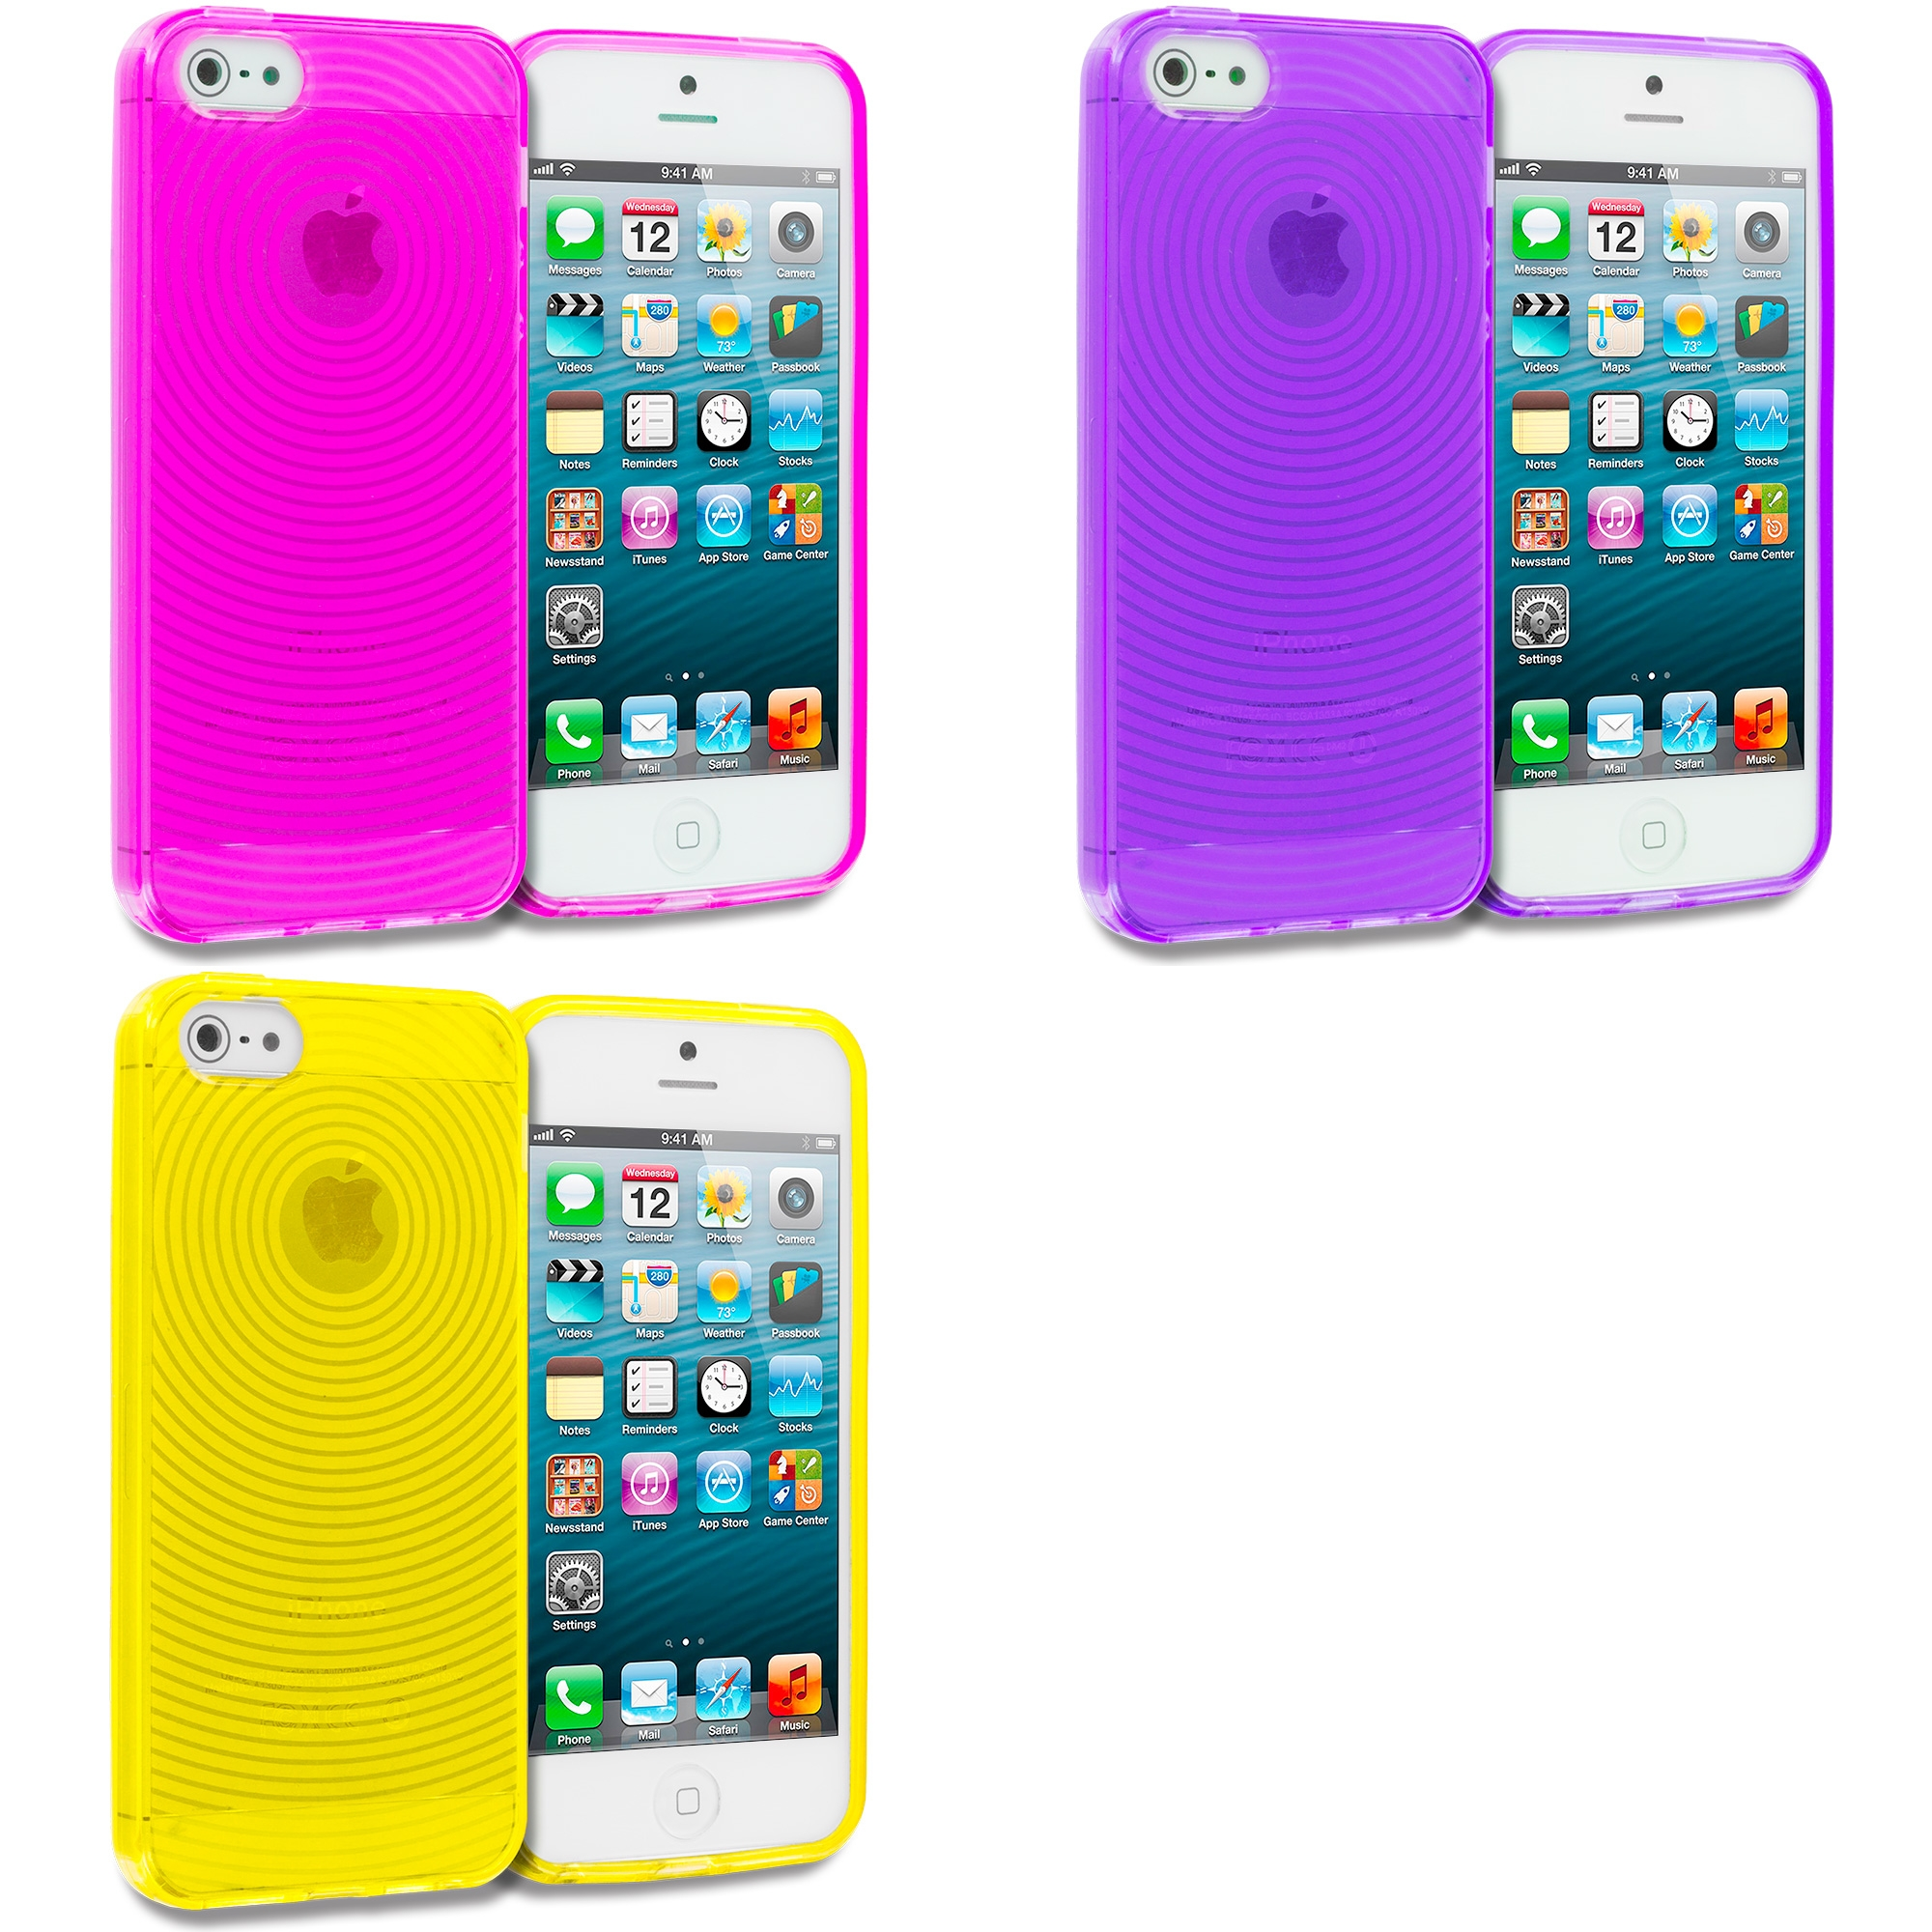 Apple iPhone 5/5S/SE Combo Pack : Hot Pink Fingerprint TPU Rubber Skin Case Cover